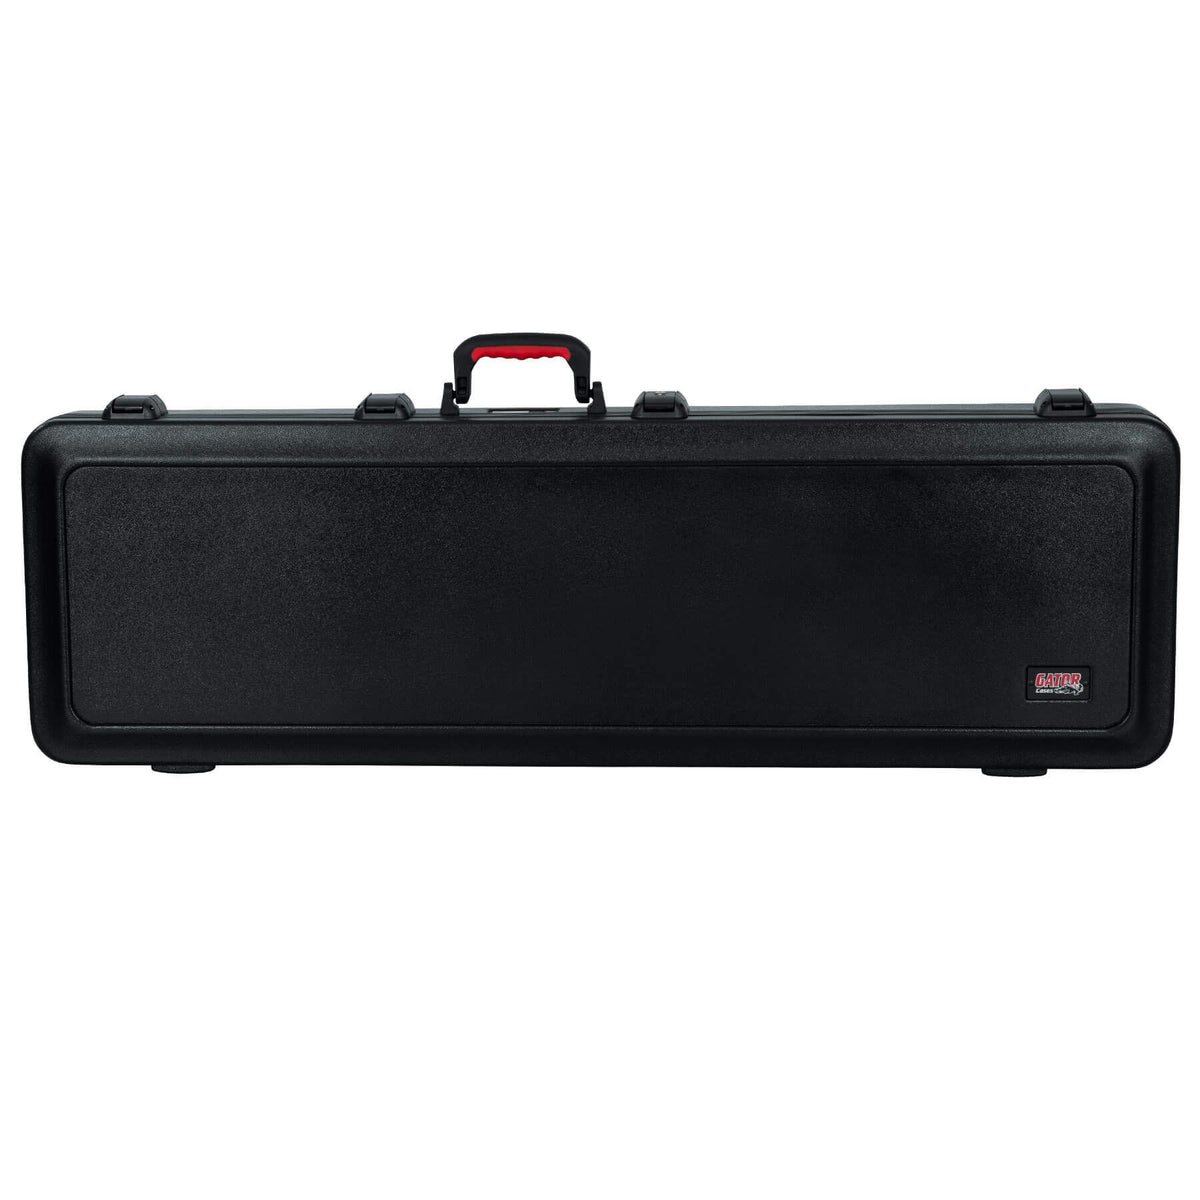 Gator ATA Bass Guitar Case fits Jackson Ellefson CBX Bass IV and V